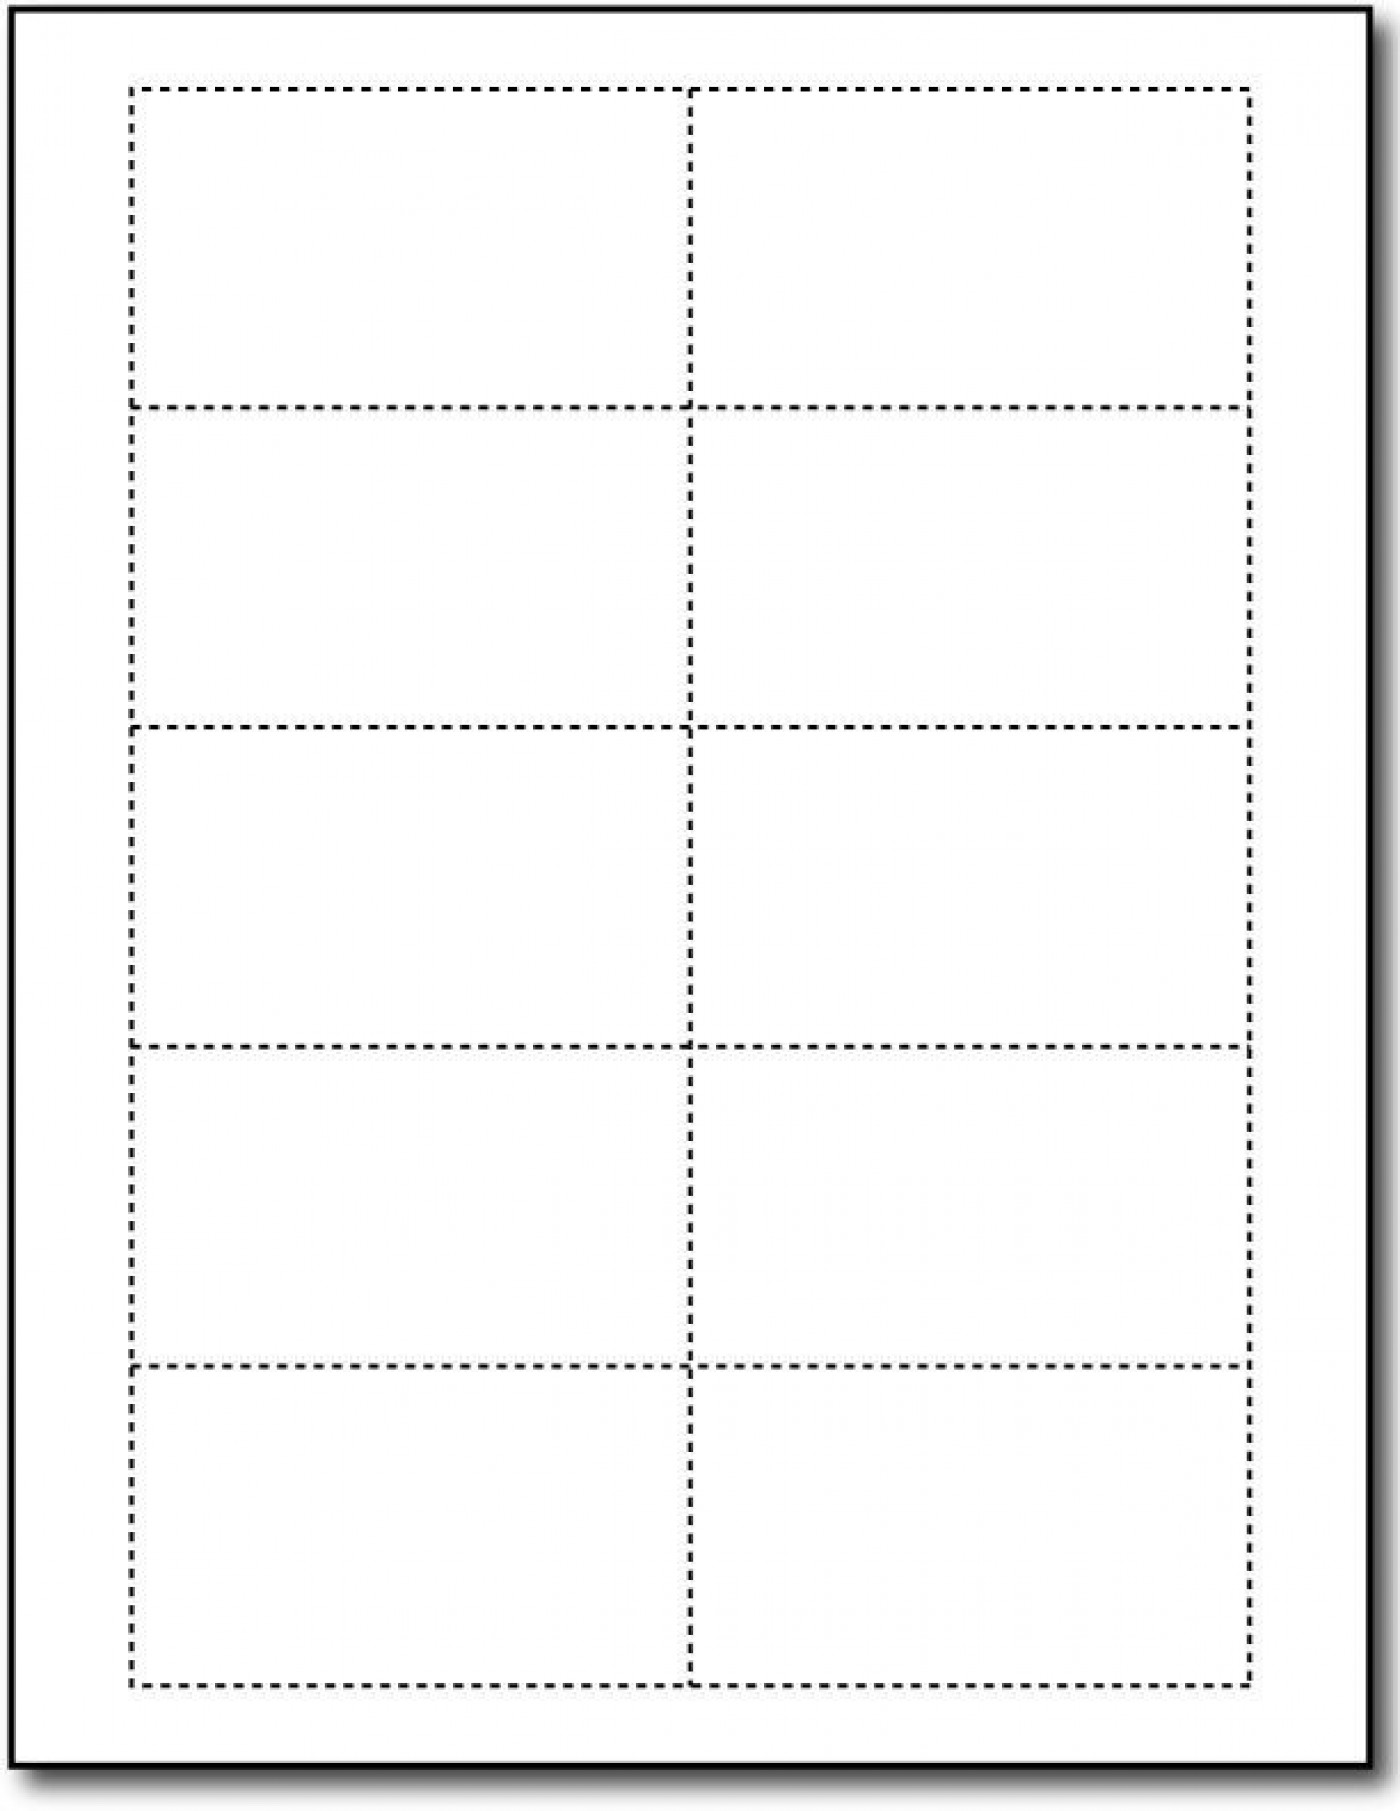 Word Busines Card Template Free Simple Download  Microsoft 2007 Double Sided Blank1400